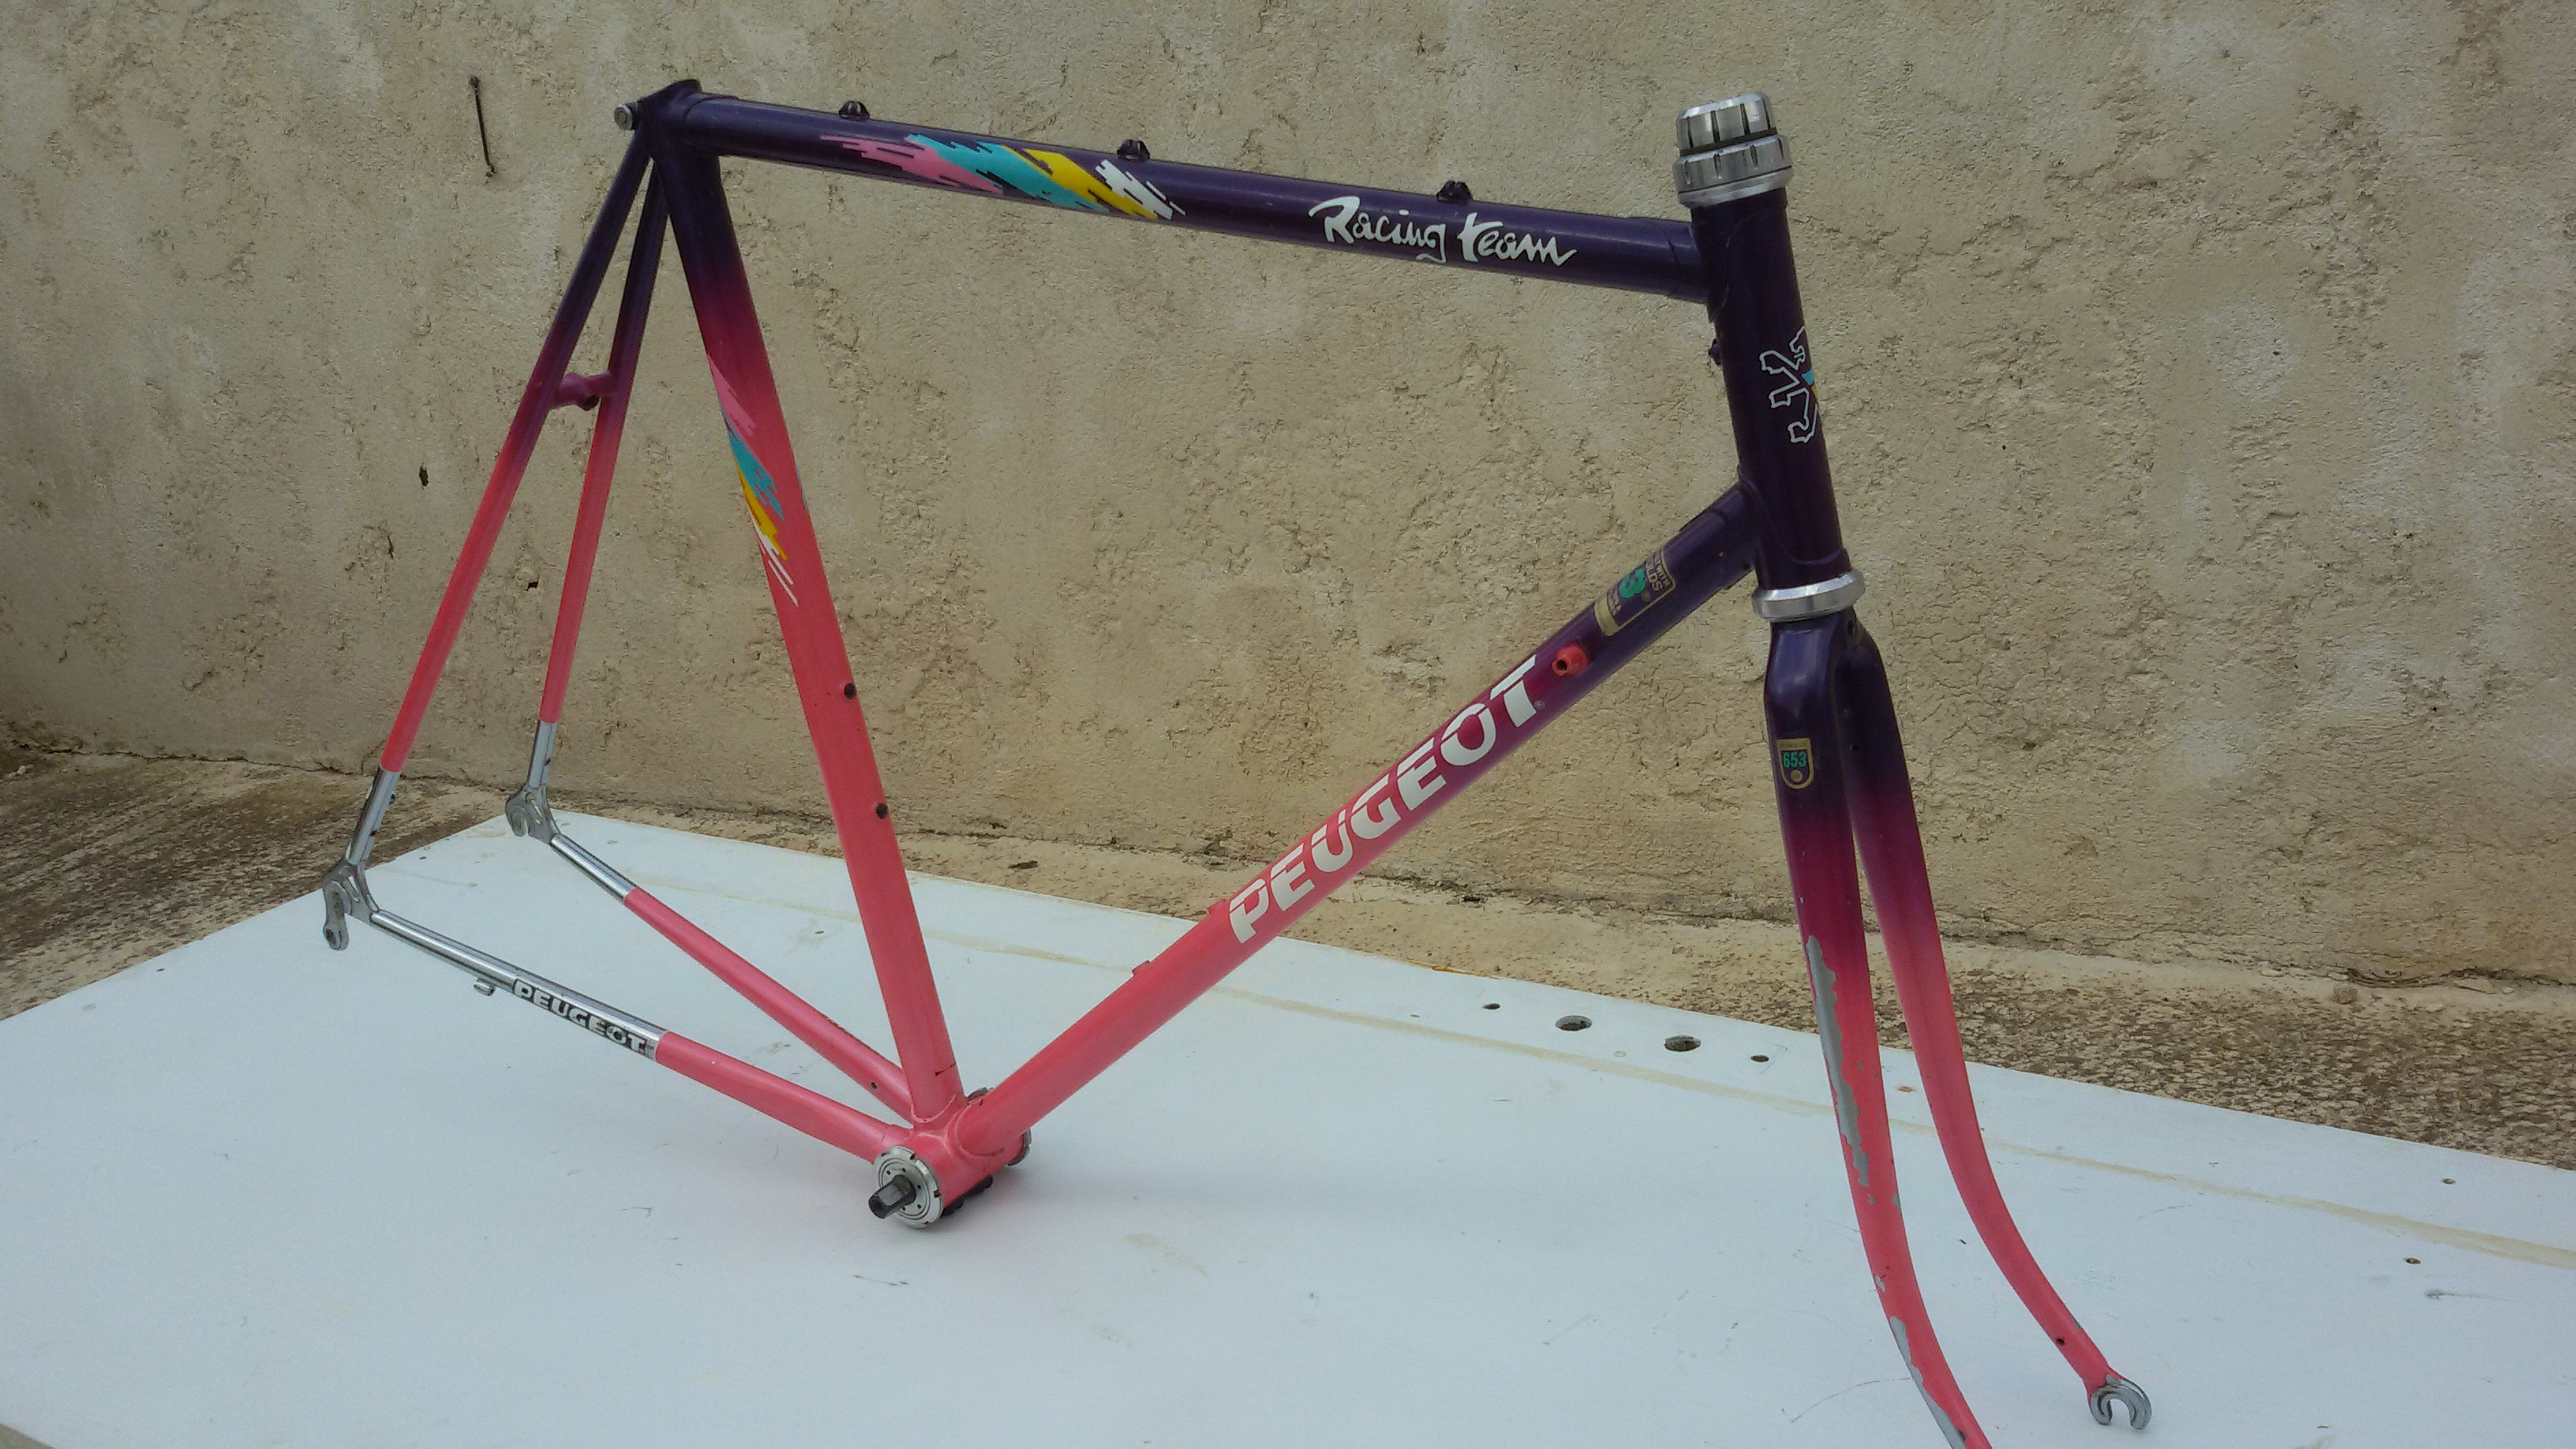 Peugeot Racing Team Reynolds 653 - taille 54 7cilwcnepd